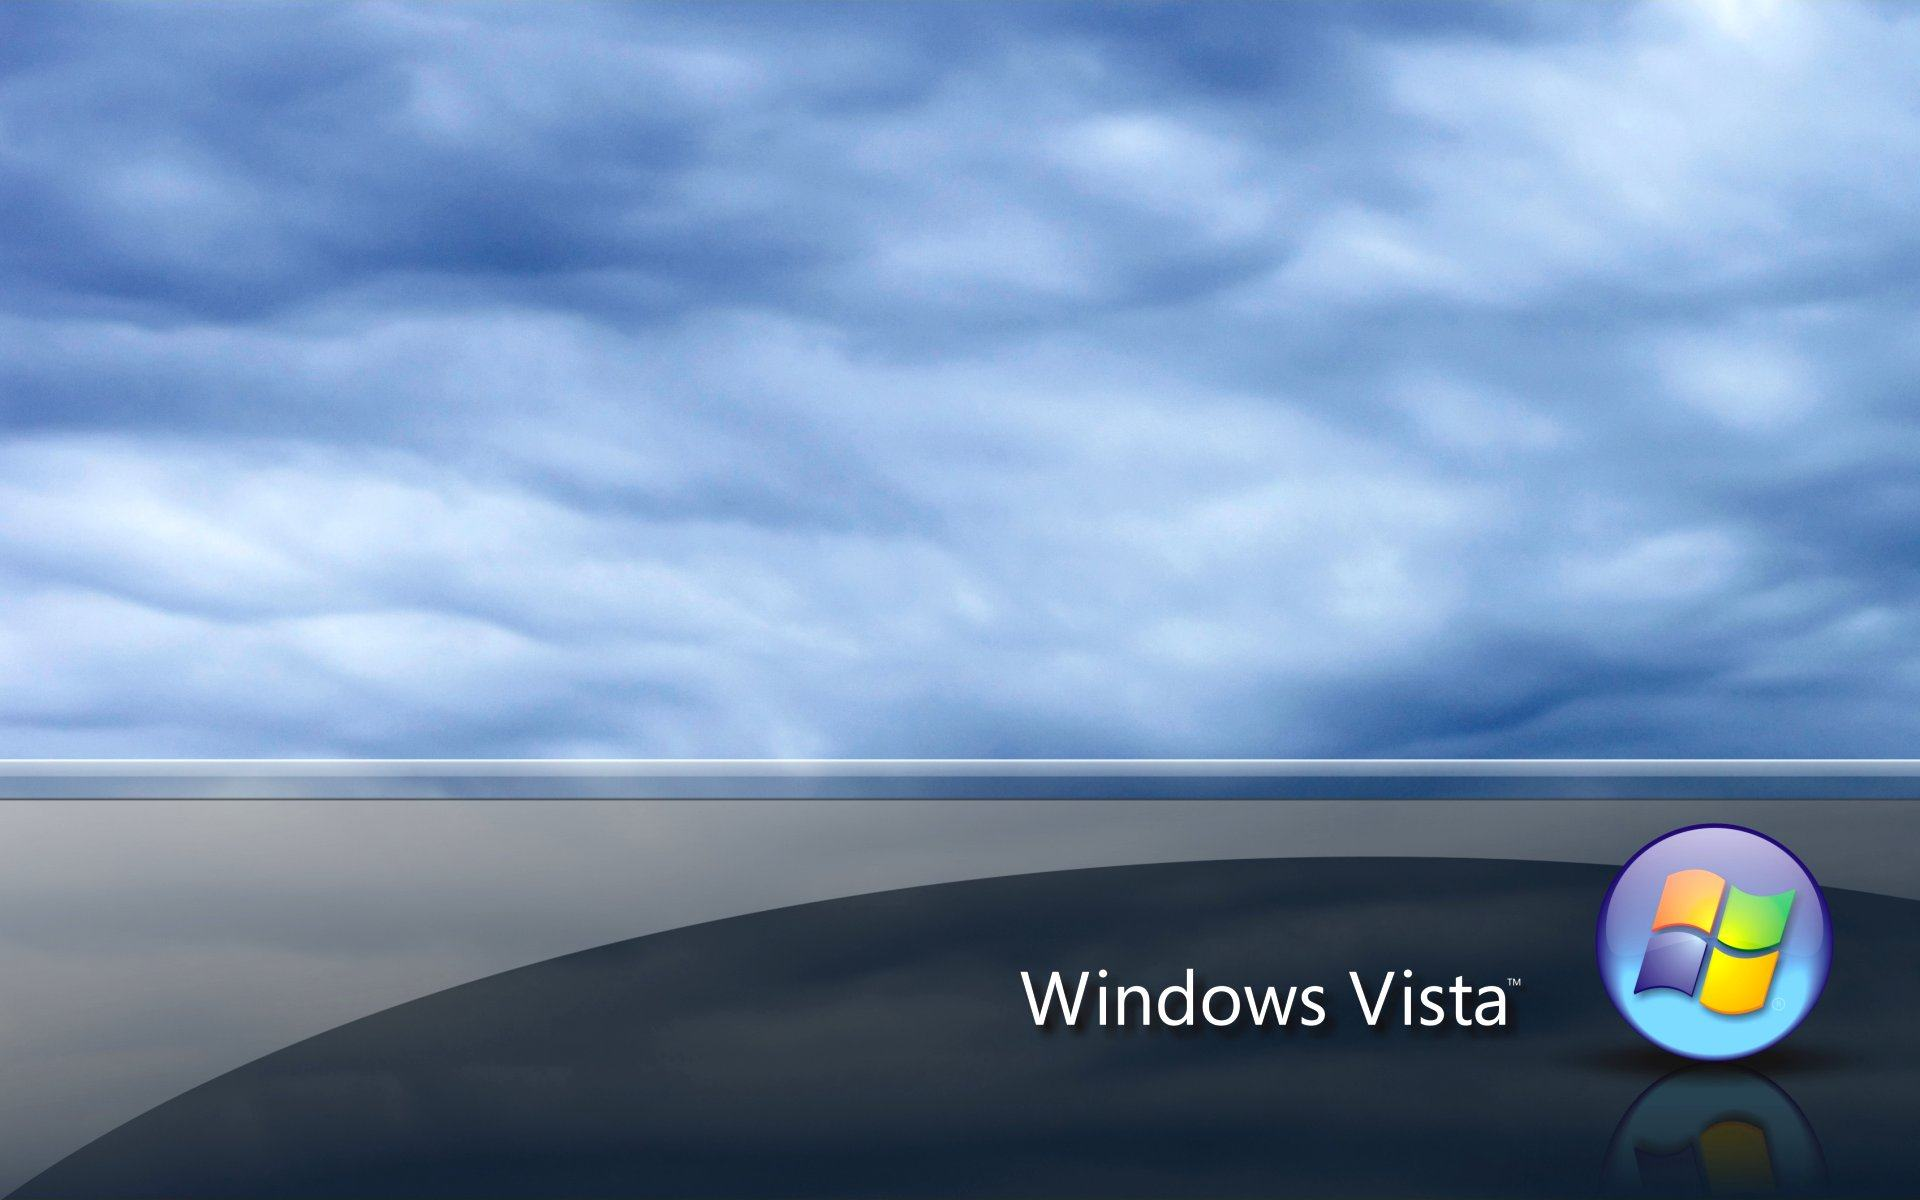 Обои Windows Vista (82) 1920x1200